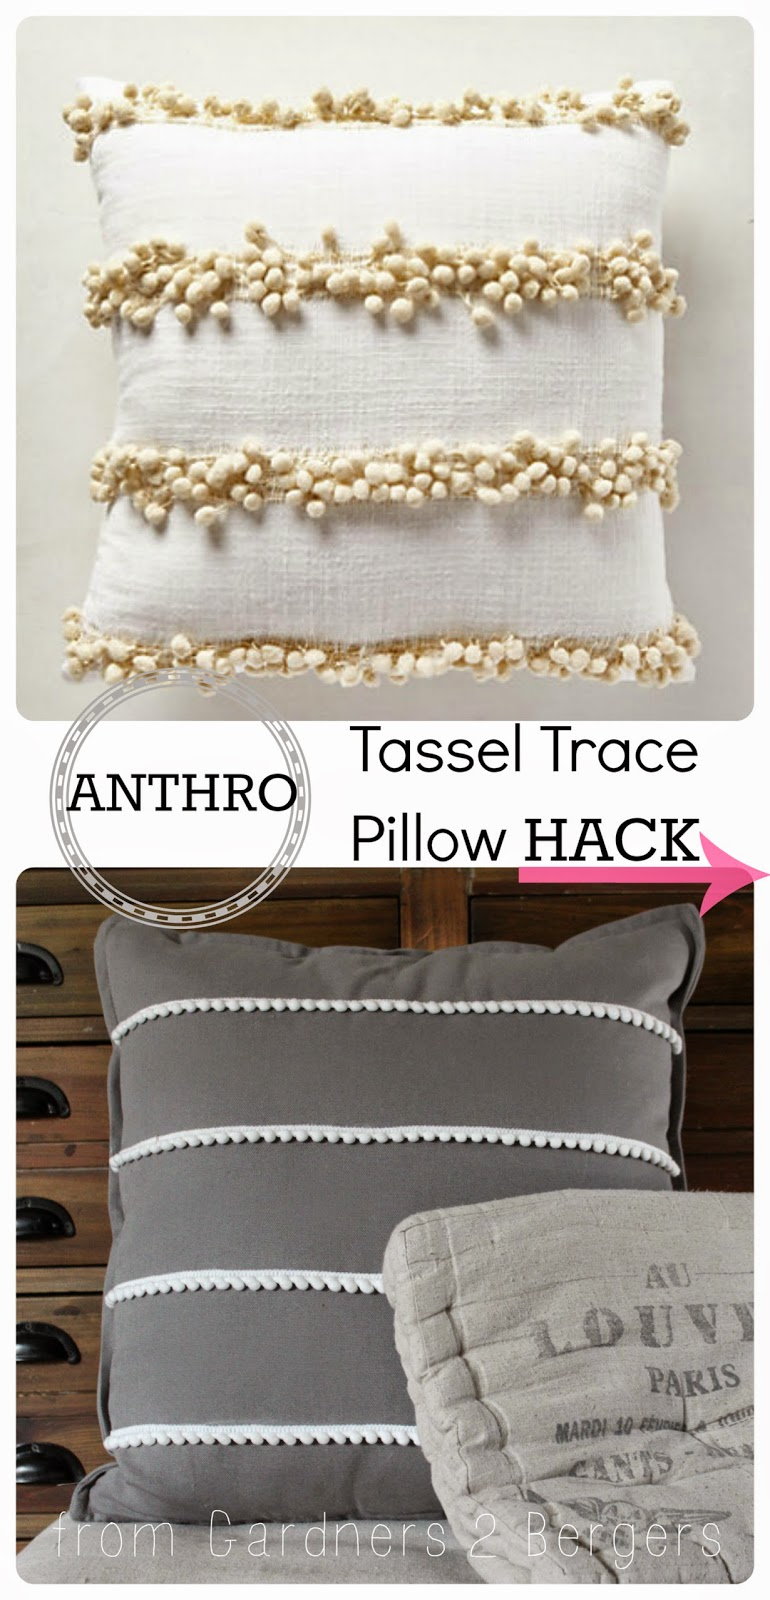 Anthro Tassel Trace Pillow [Hack]